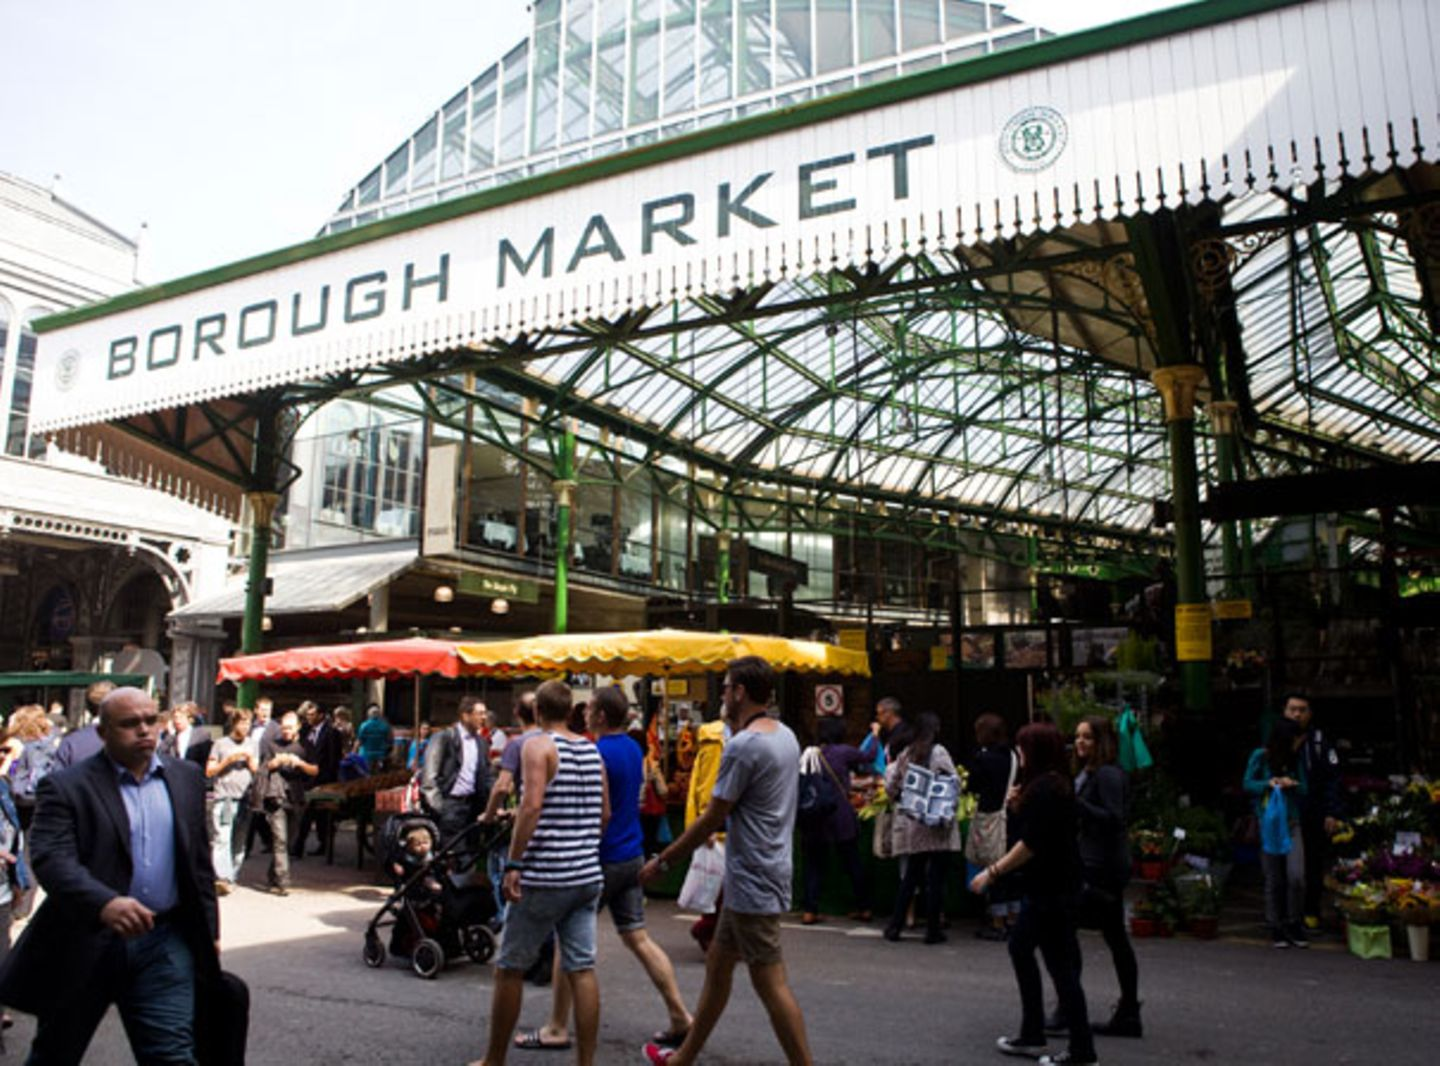 Kulinarisches am Wasser: Bourough Market